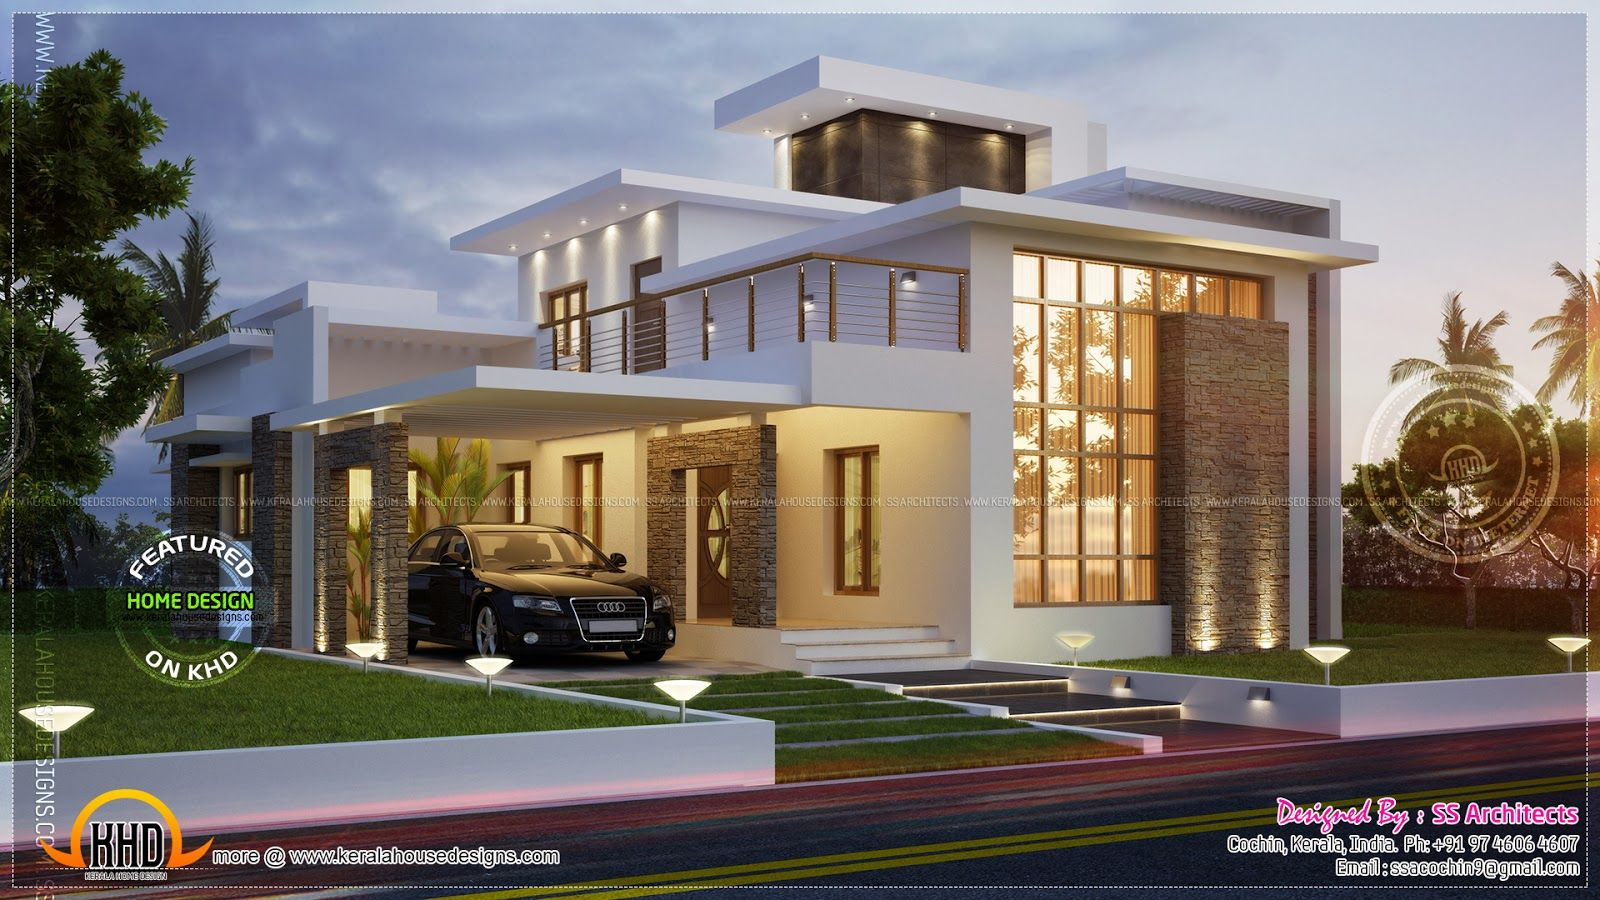 Sq feet contemporary house kerala home design floor plans for Home designs 3000 square feet